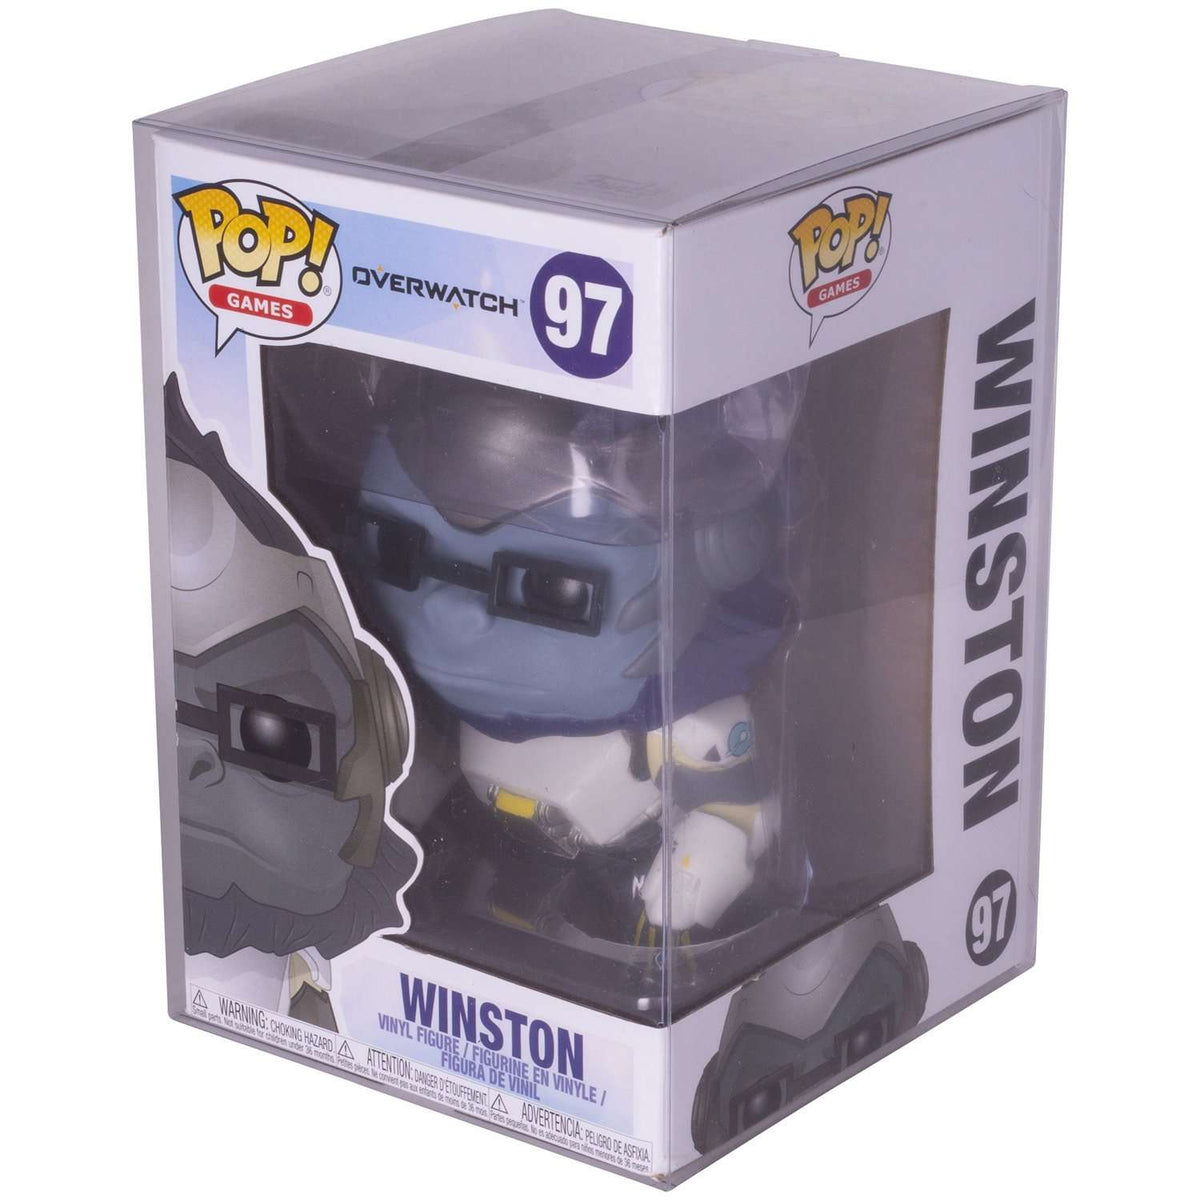 Funko Pop for OverWatch Winston 6 Inch Pop Truck - EvoRetro Lets Game